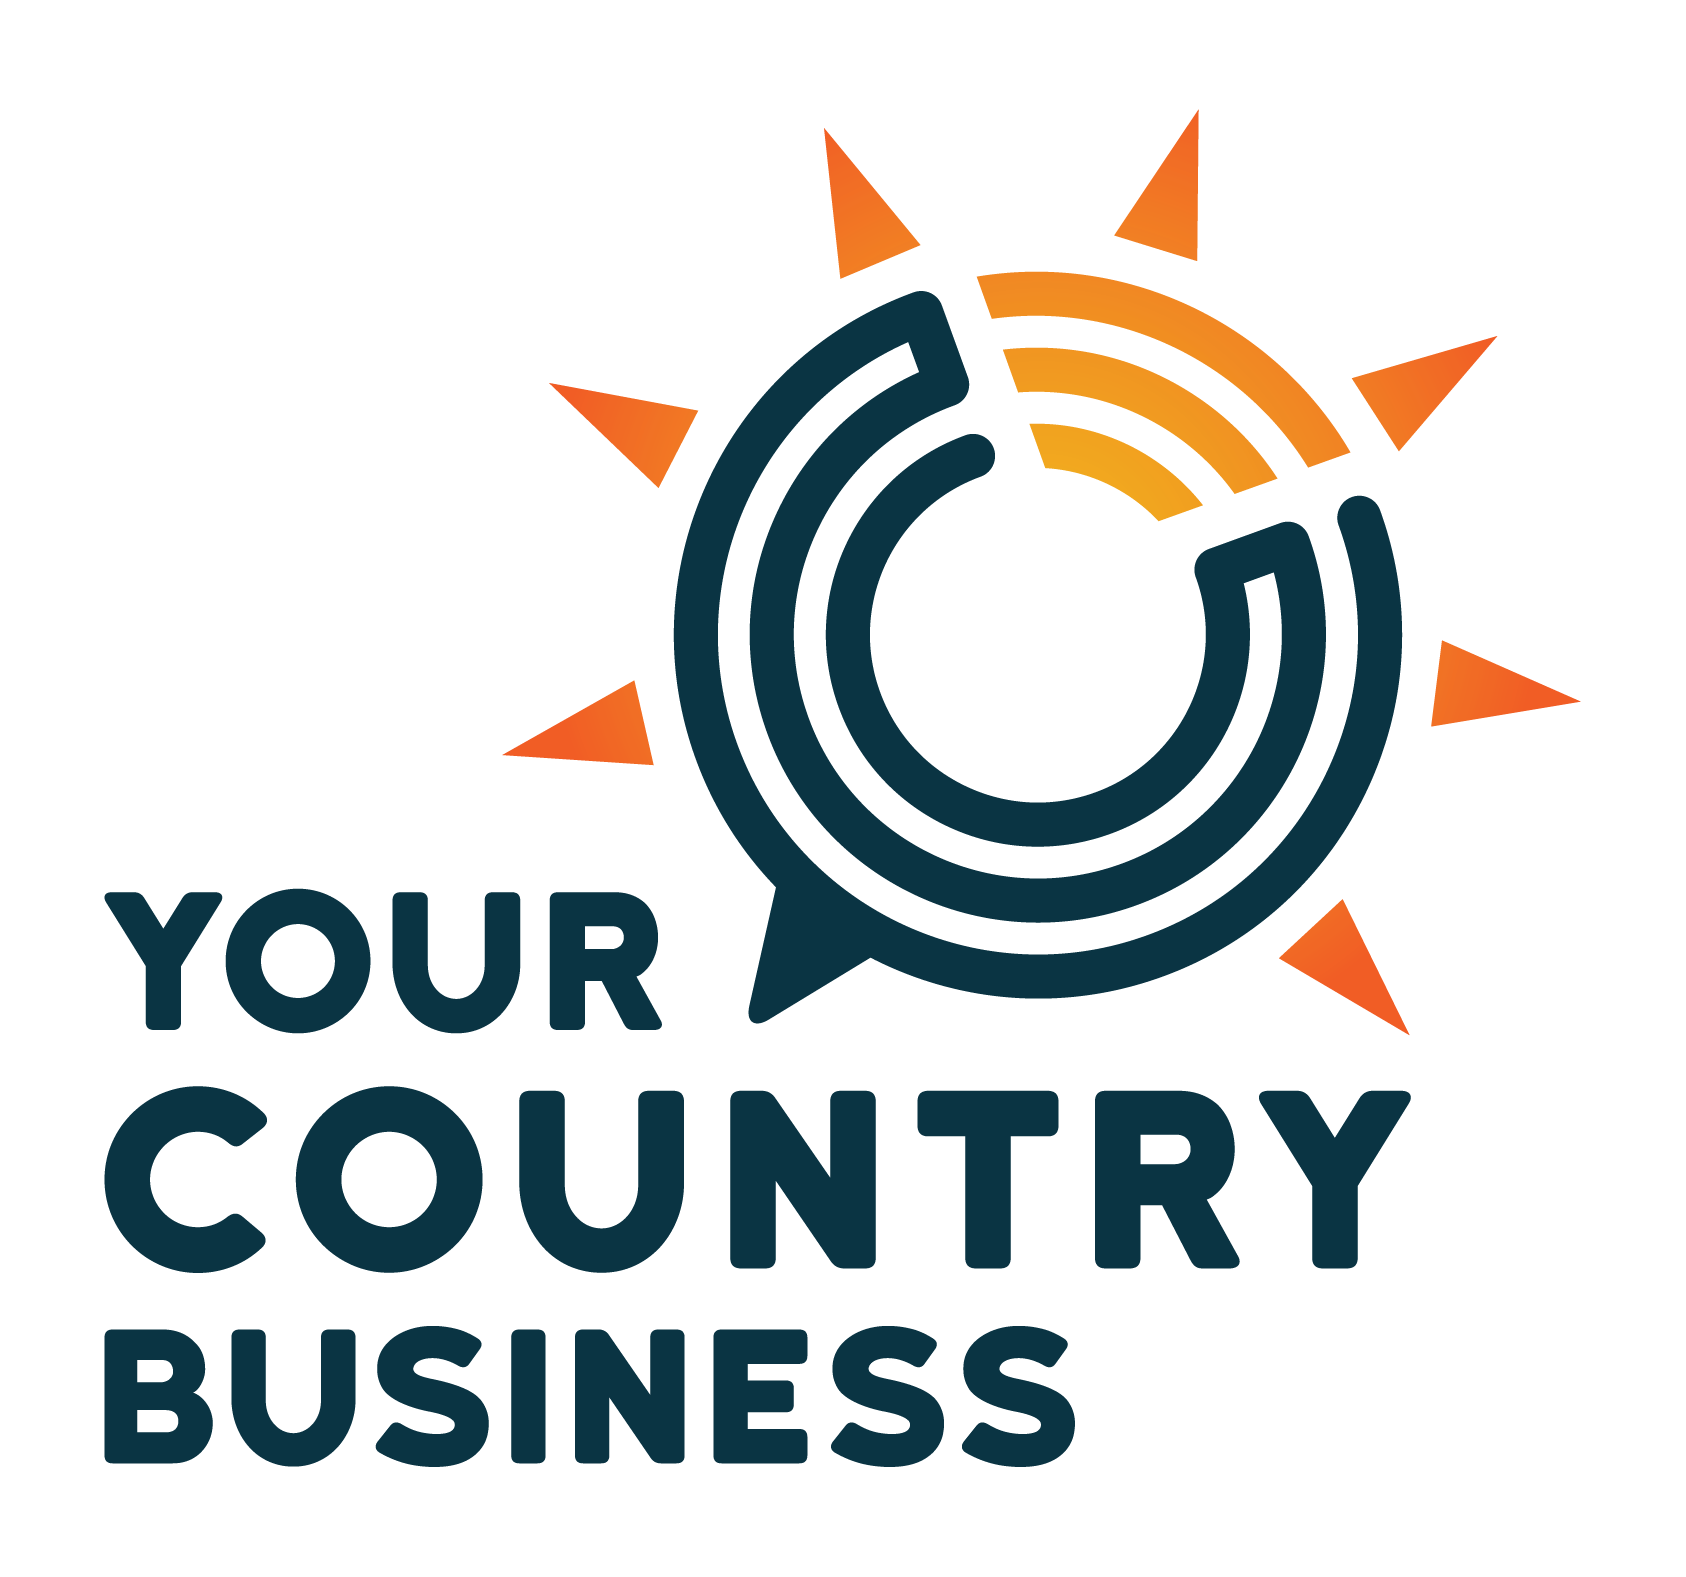 Your Country Business